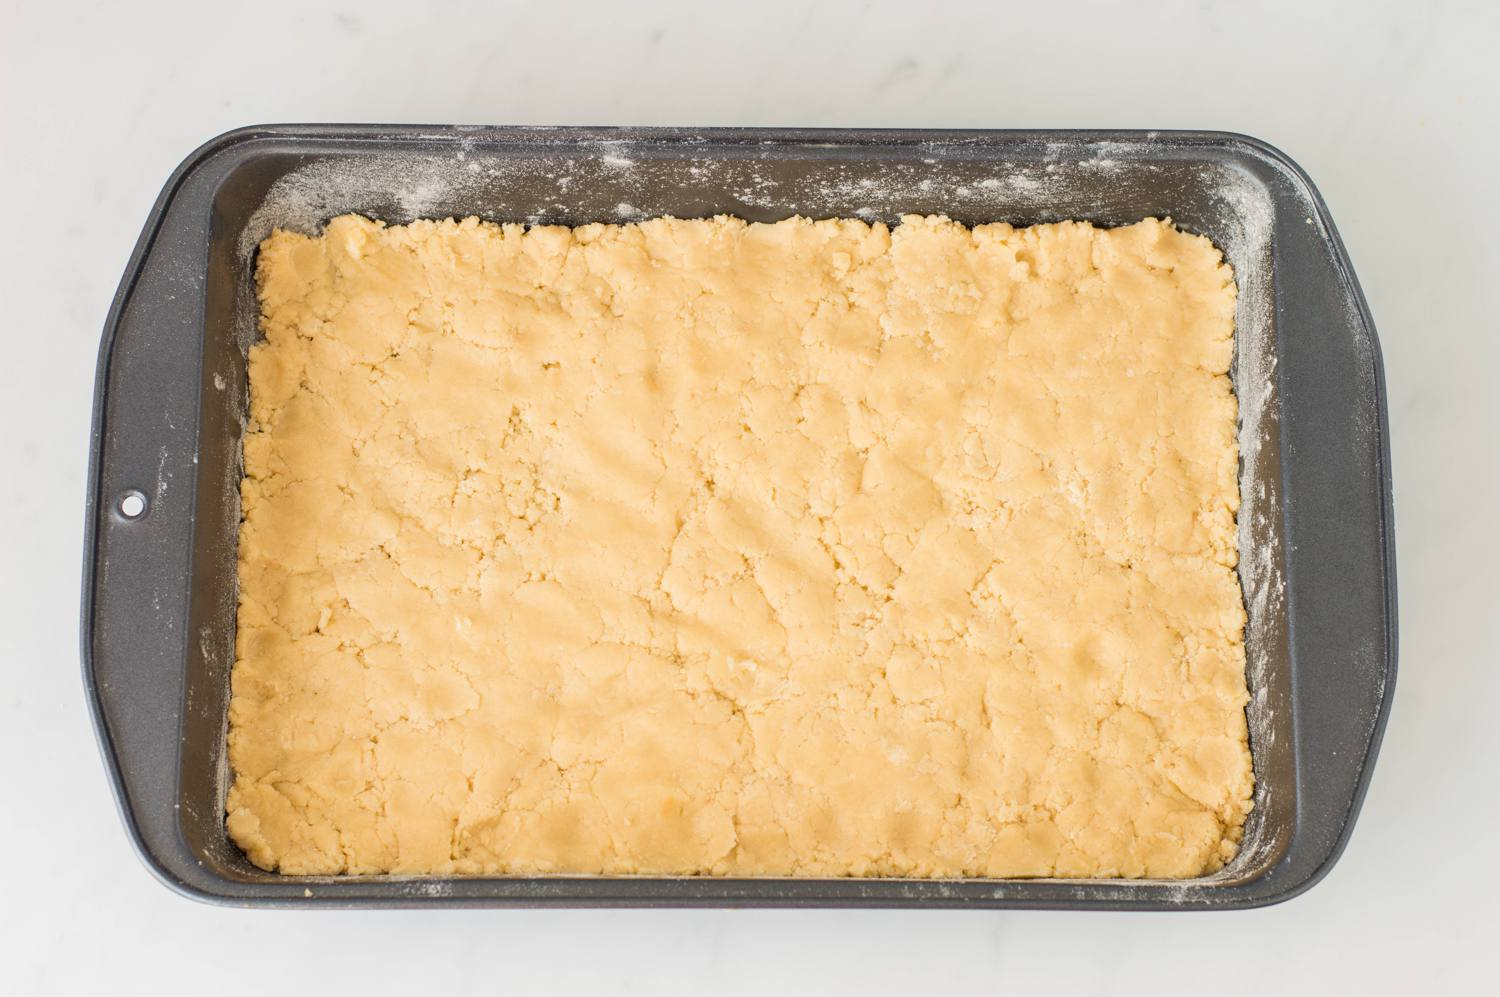 Cake mix patted down in a baking pan